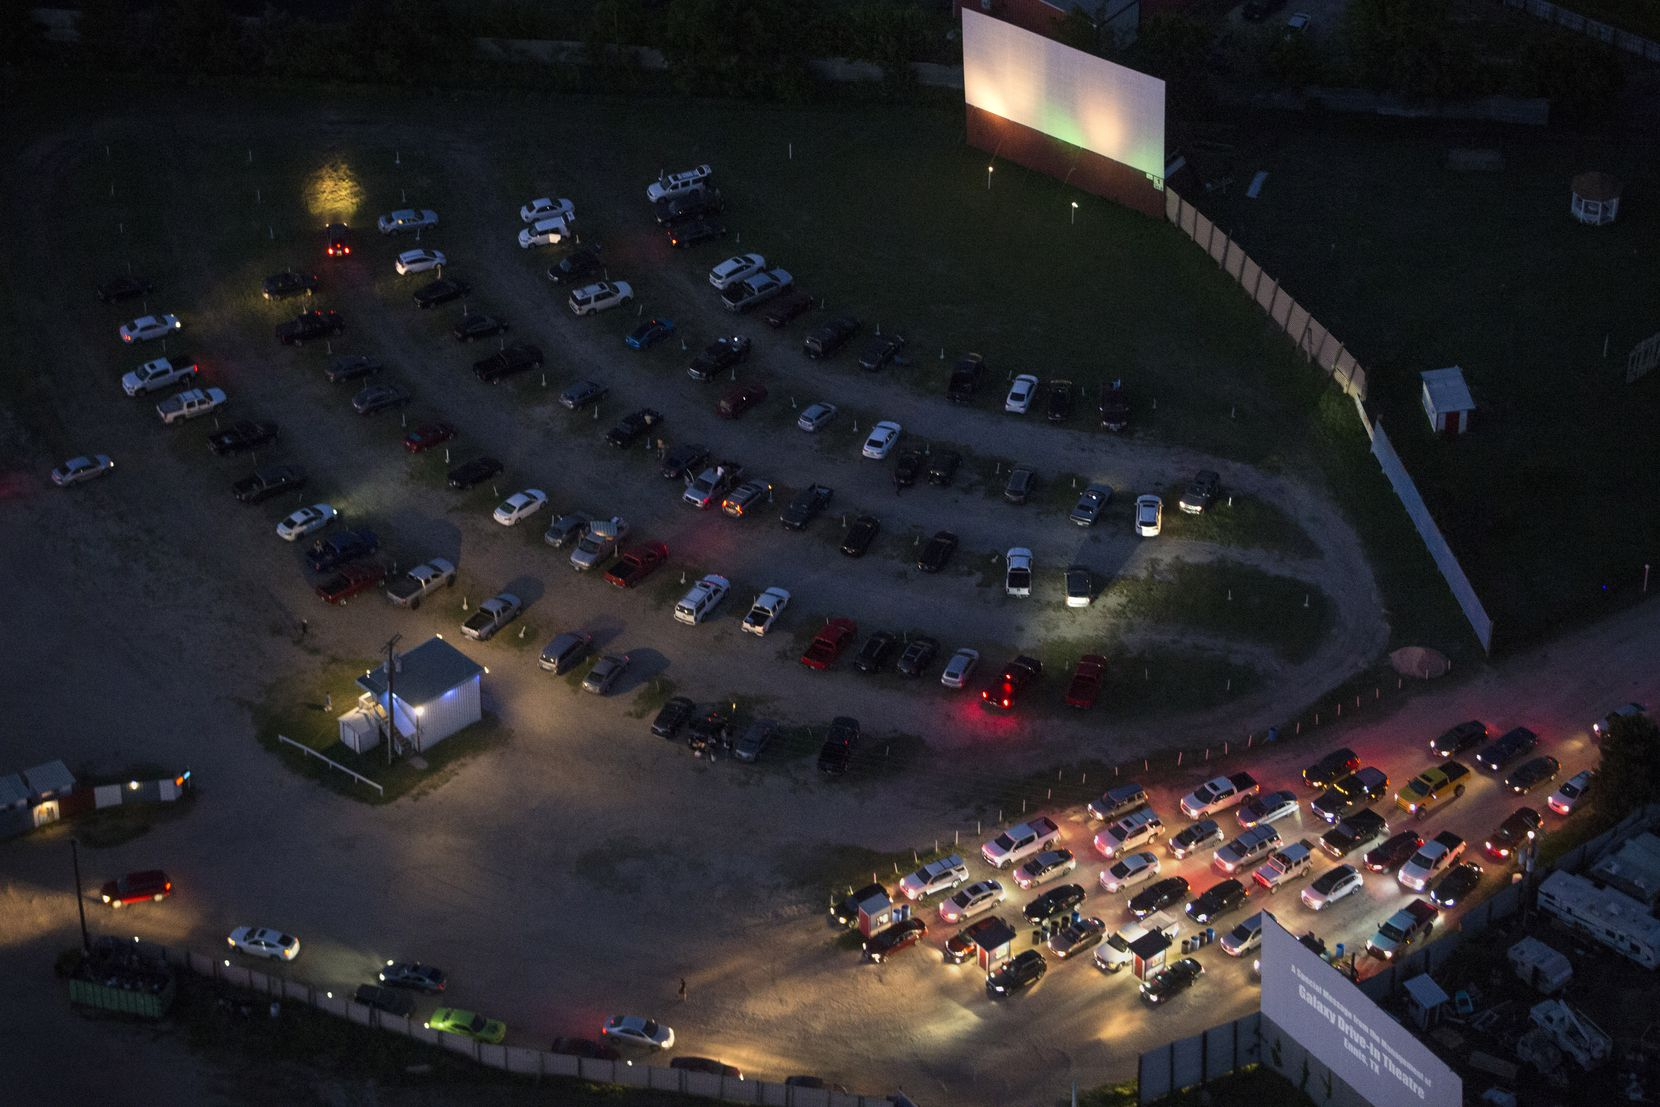 Cars fill Galaxy Drive-In Movie Theatre is seen on Saturday, May 2, 2020 in Ennis, Texas. (Ryan Michalesko/Staff Photographer)